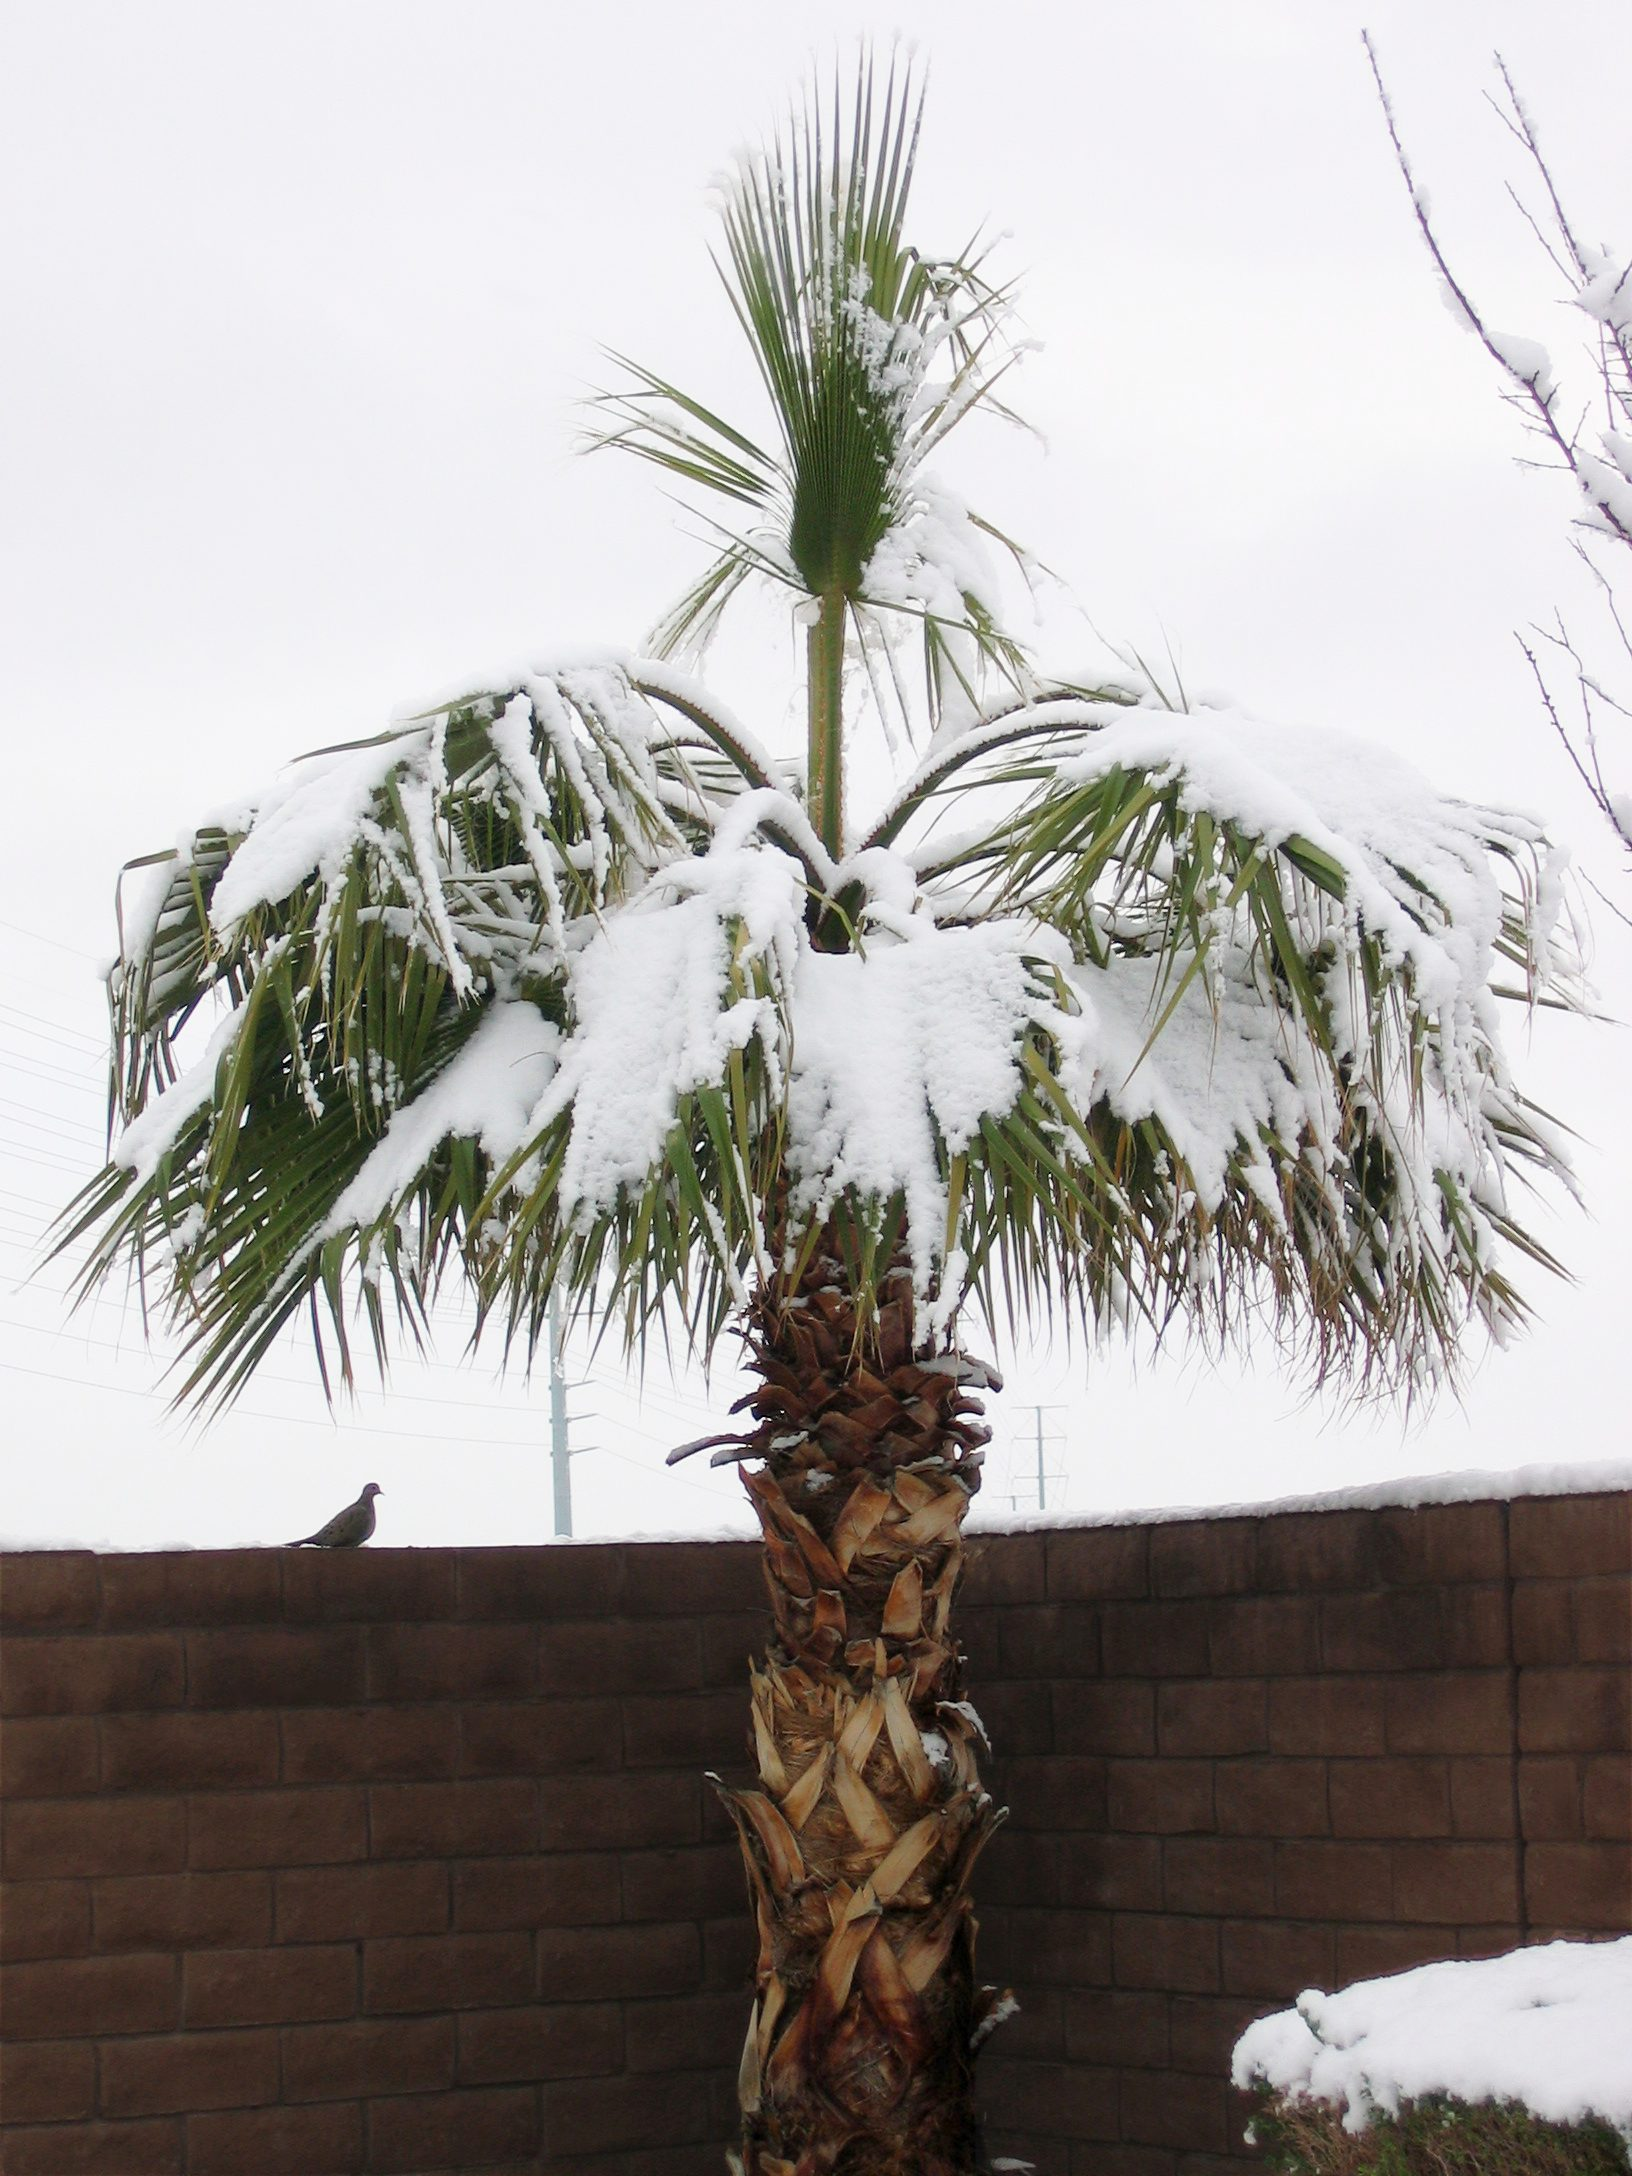 Snow in Las Vegas